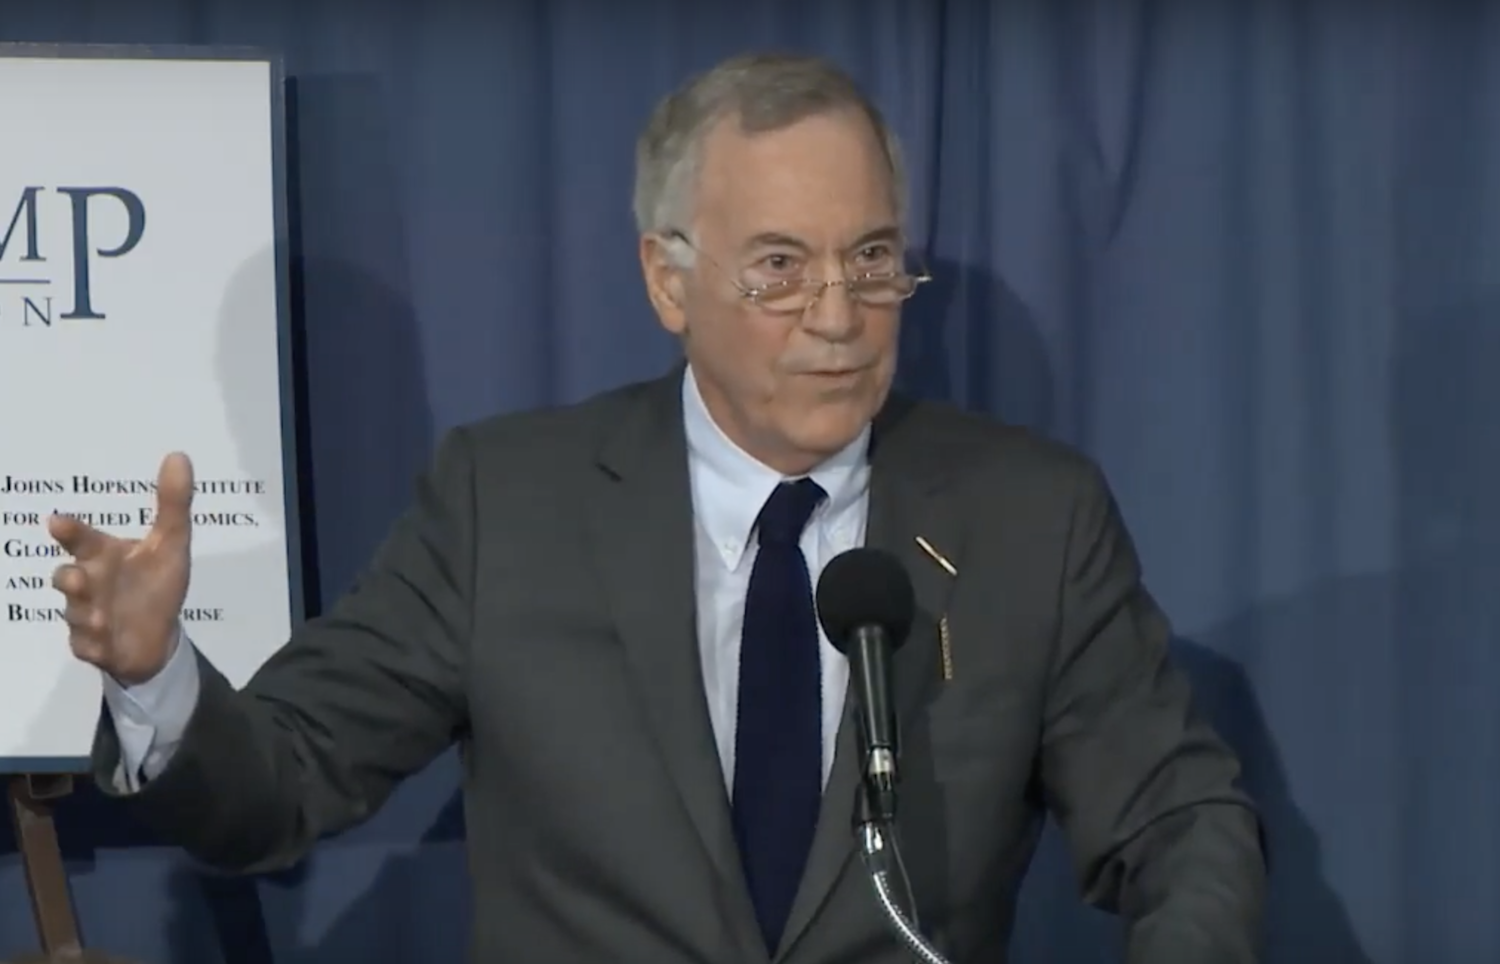 Adopting Bitcoin as Legal Tender Could Collapse El Salvador's Economy, Steve Hanke Says